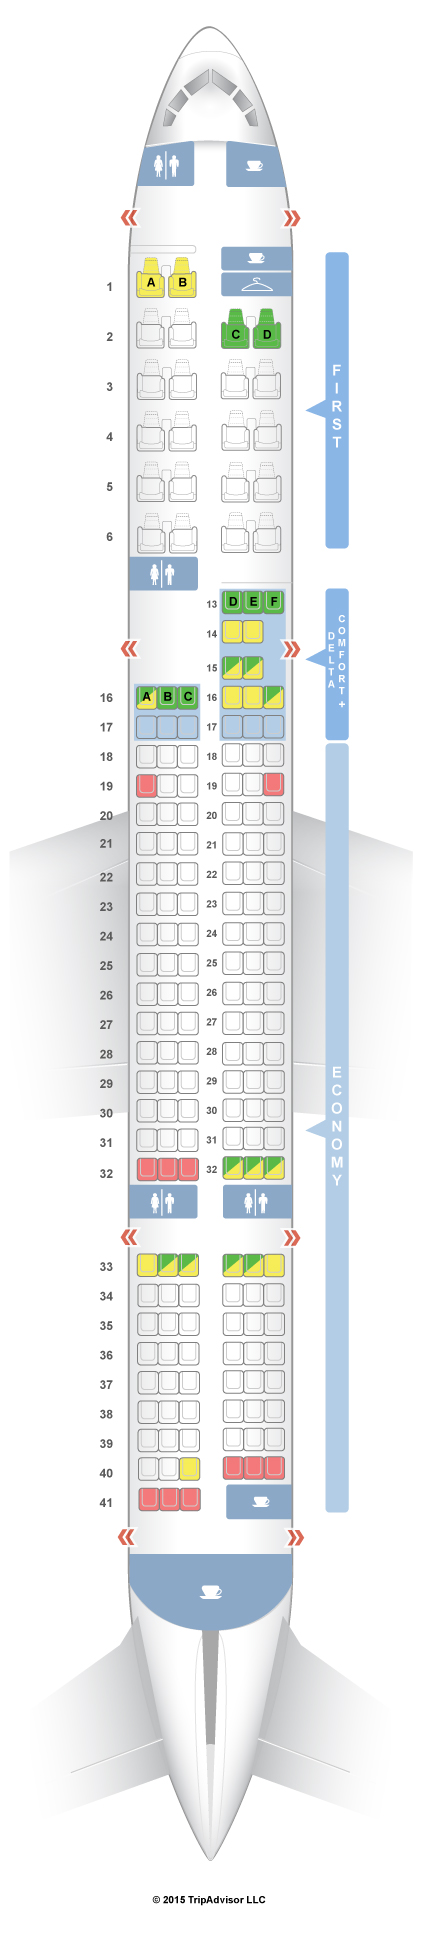 delta airlines seat assignments You'll still enjoy the same main cabin experience at a lower cost, in exchange for fewer options like receiving your seat assignment after check in explore the details to see if basic economy fits your needs.